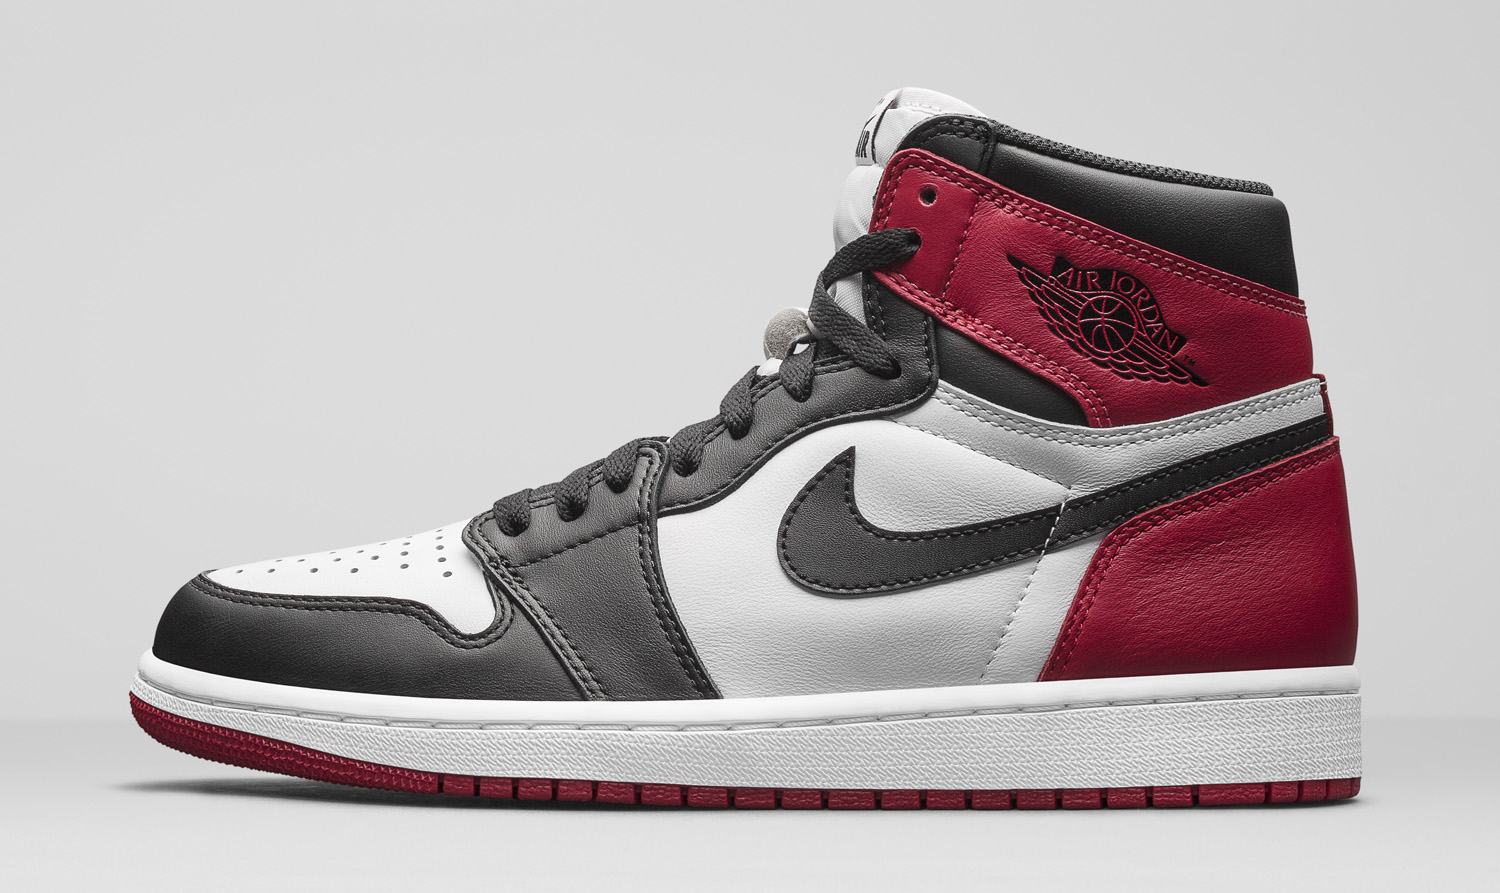 Air Jordan 1 Black Toe 555088-125 Lateral